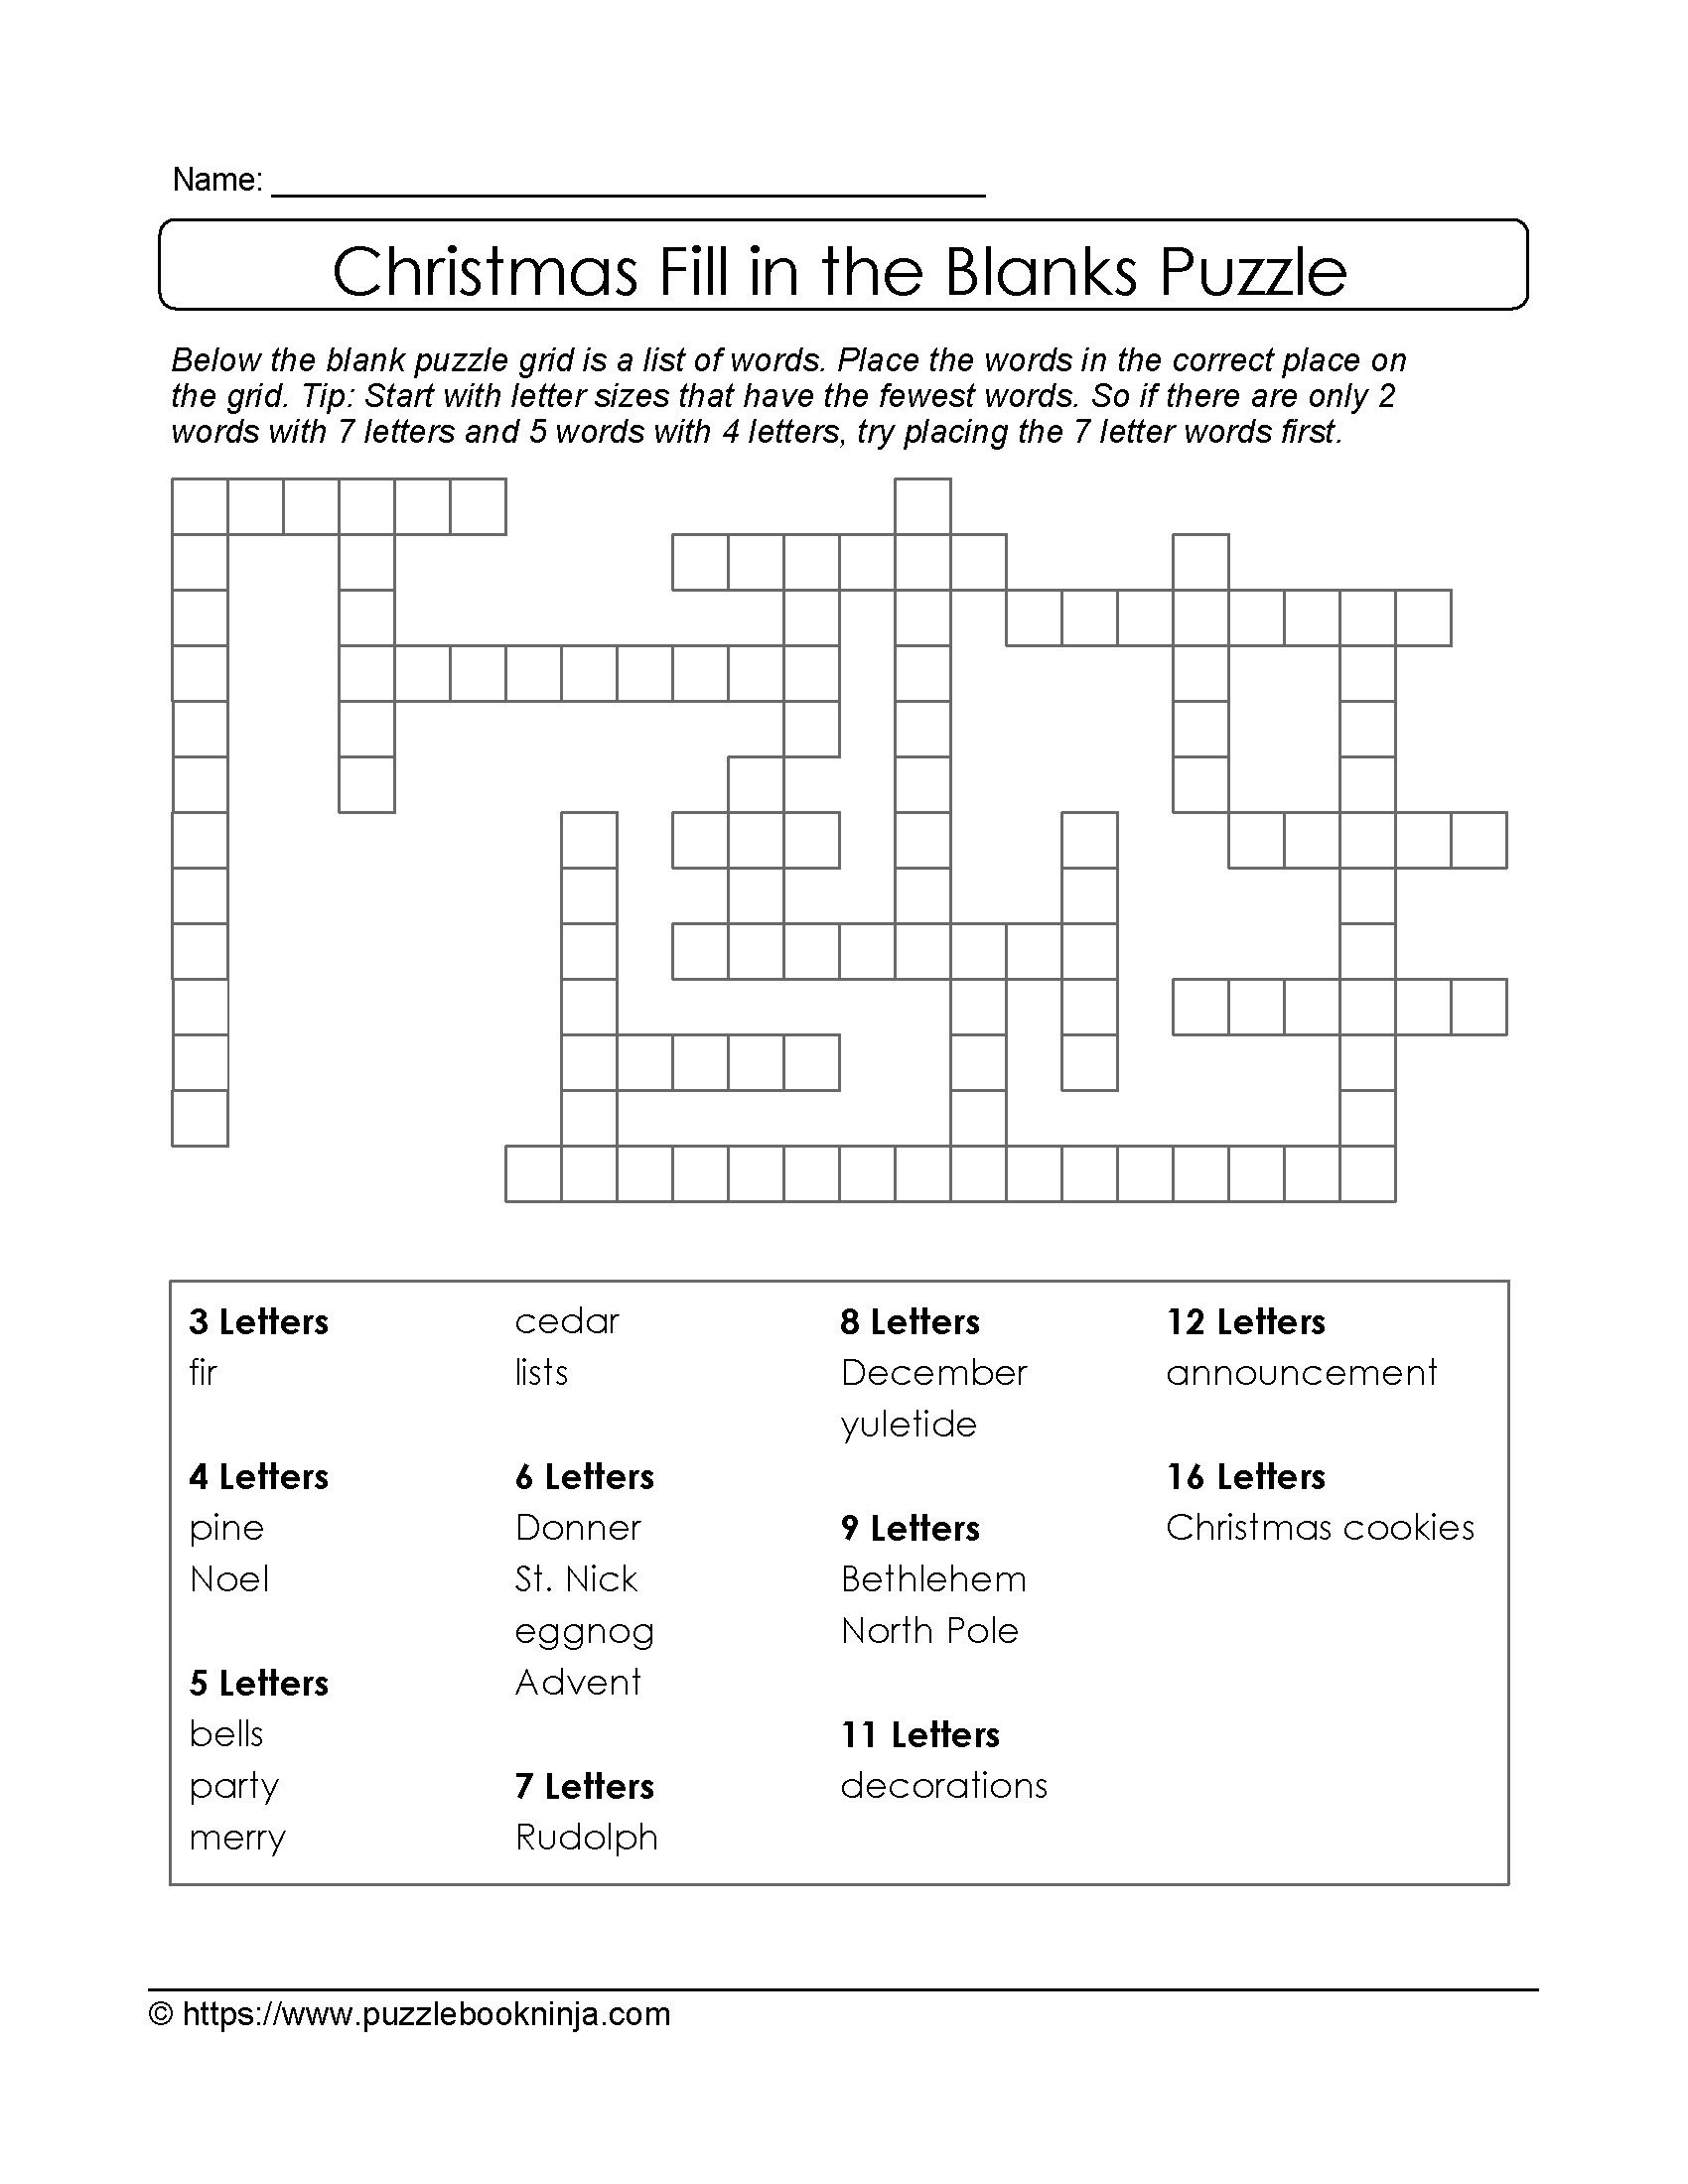 Christmas Printable Puzzle. Free Fill In The Blanks. | Christmas - Printable Blank Crossword